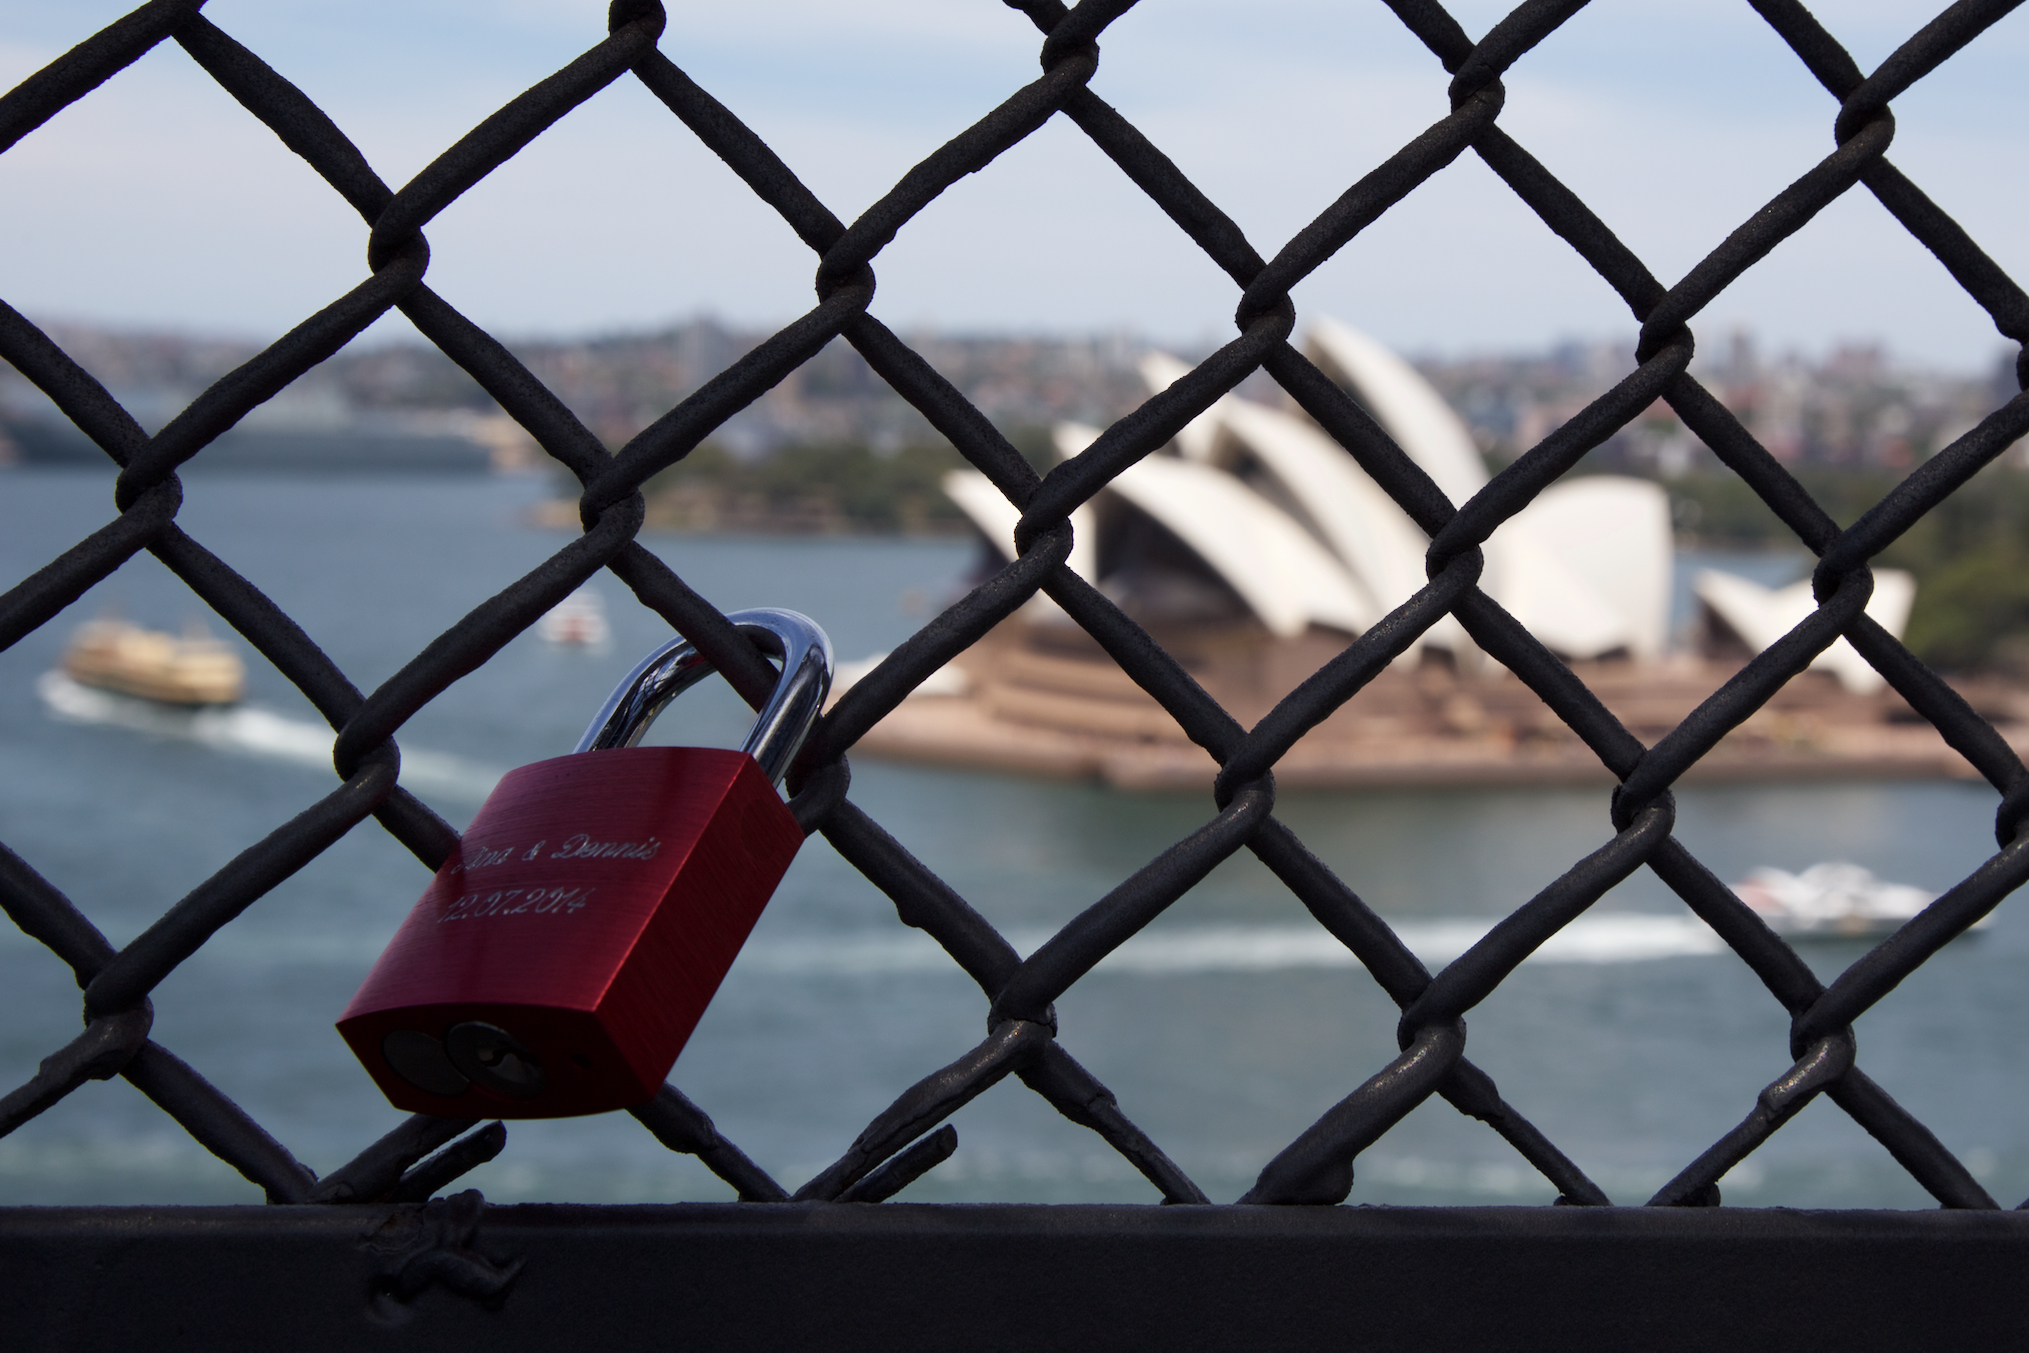 Sydney Opera House views from the Harbour Bridge...